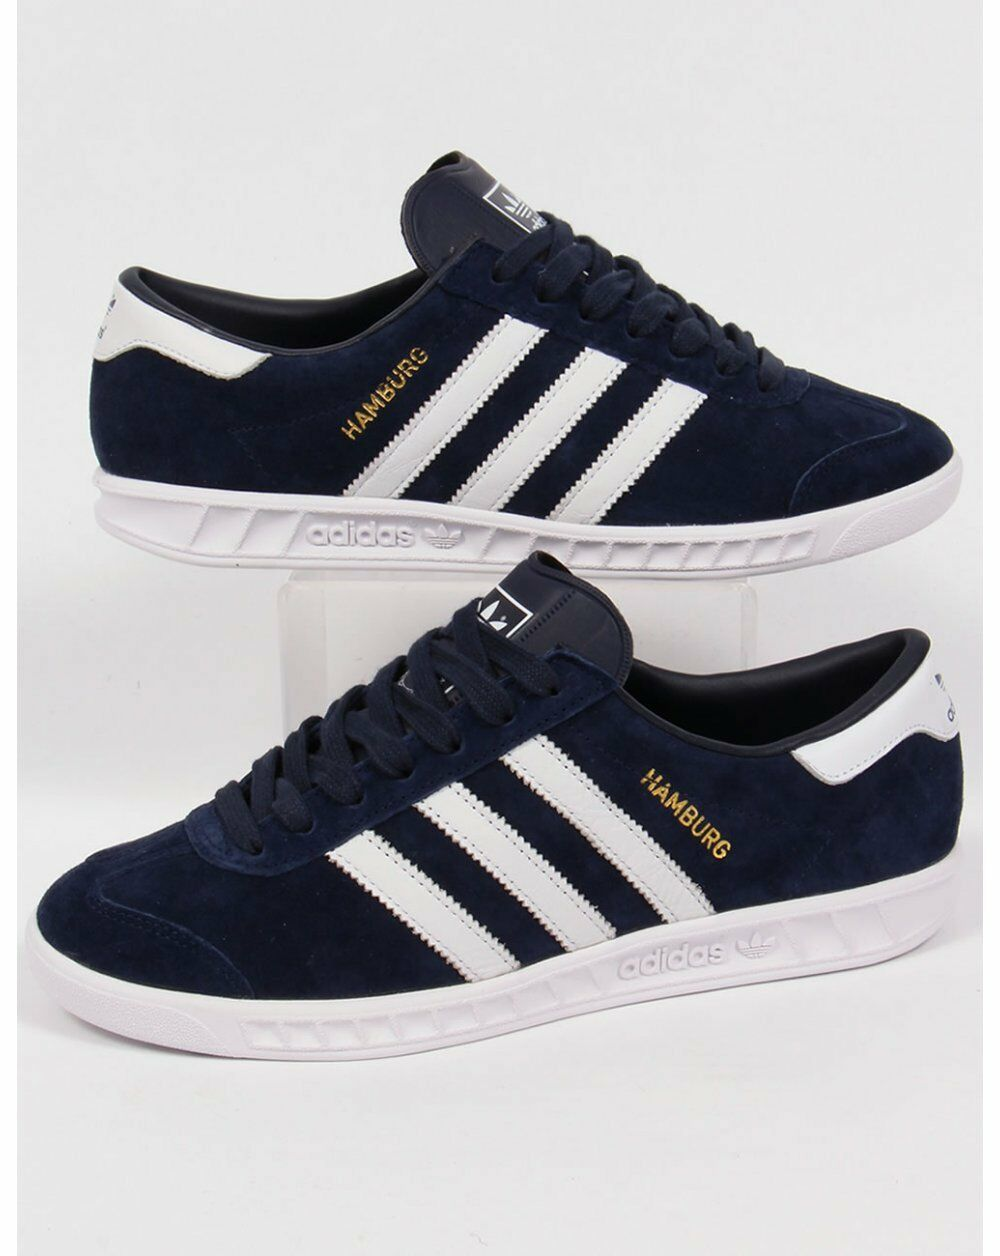 adidas Hamburg Trainers Suede in Navy & Blanco, Suede Trainers - LAST Talla SALE 7730b1